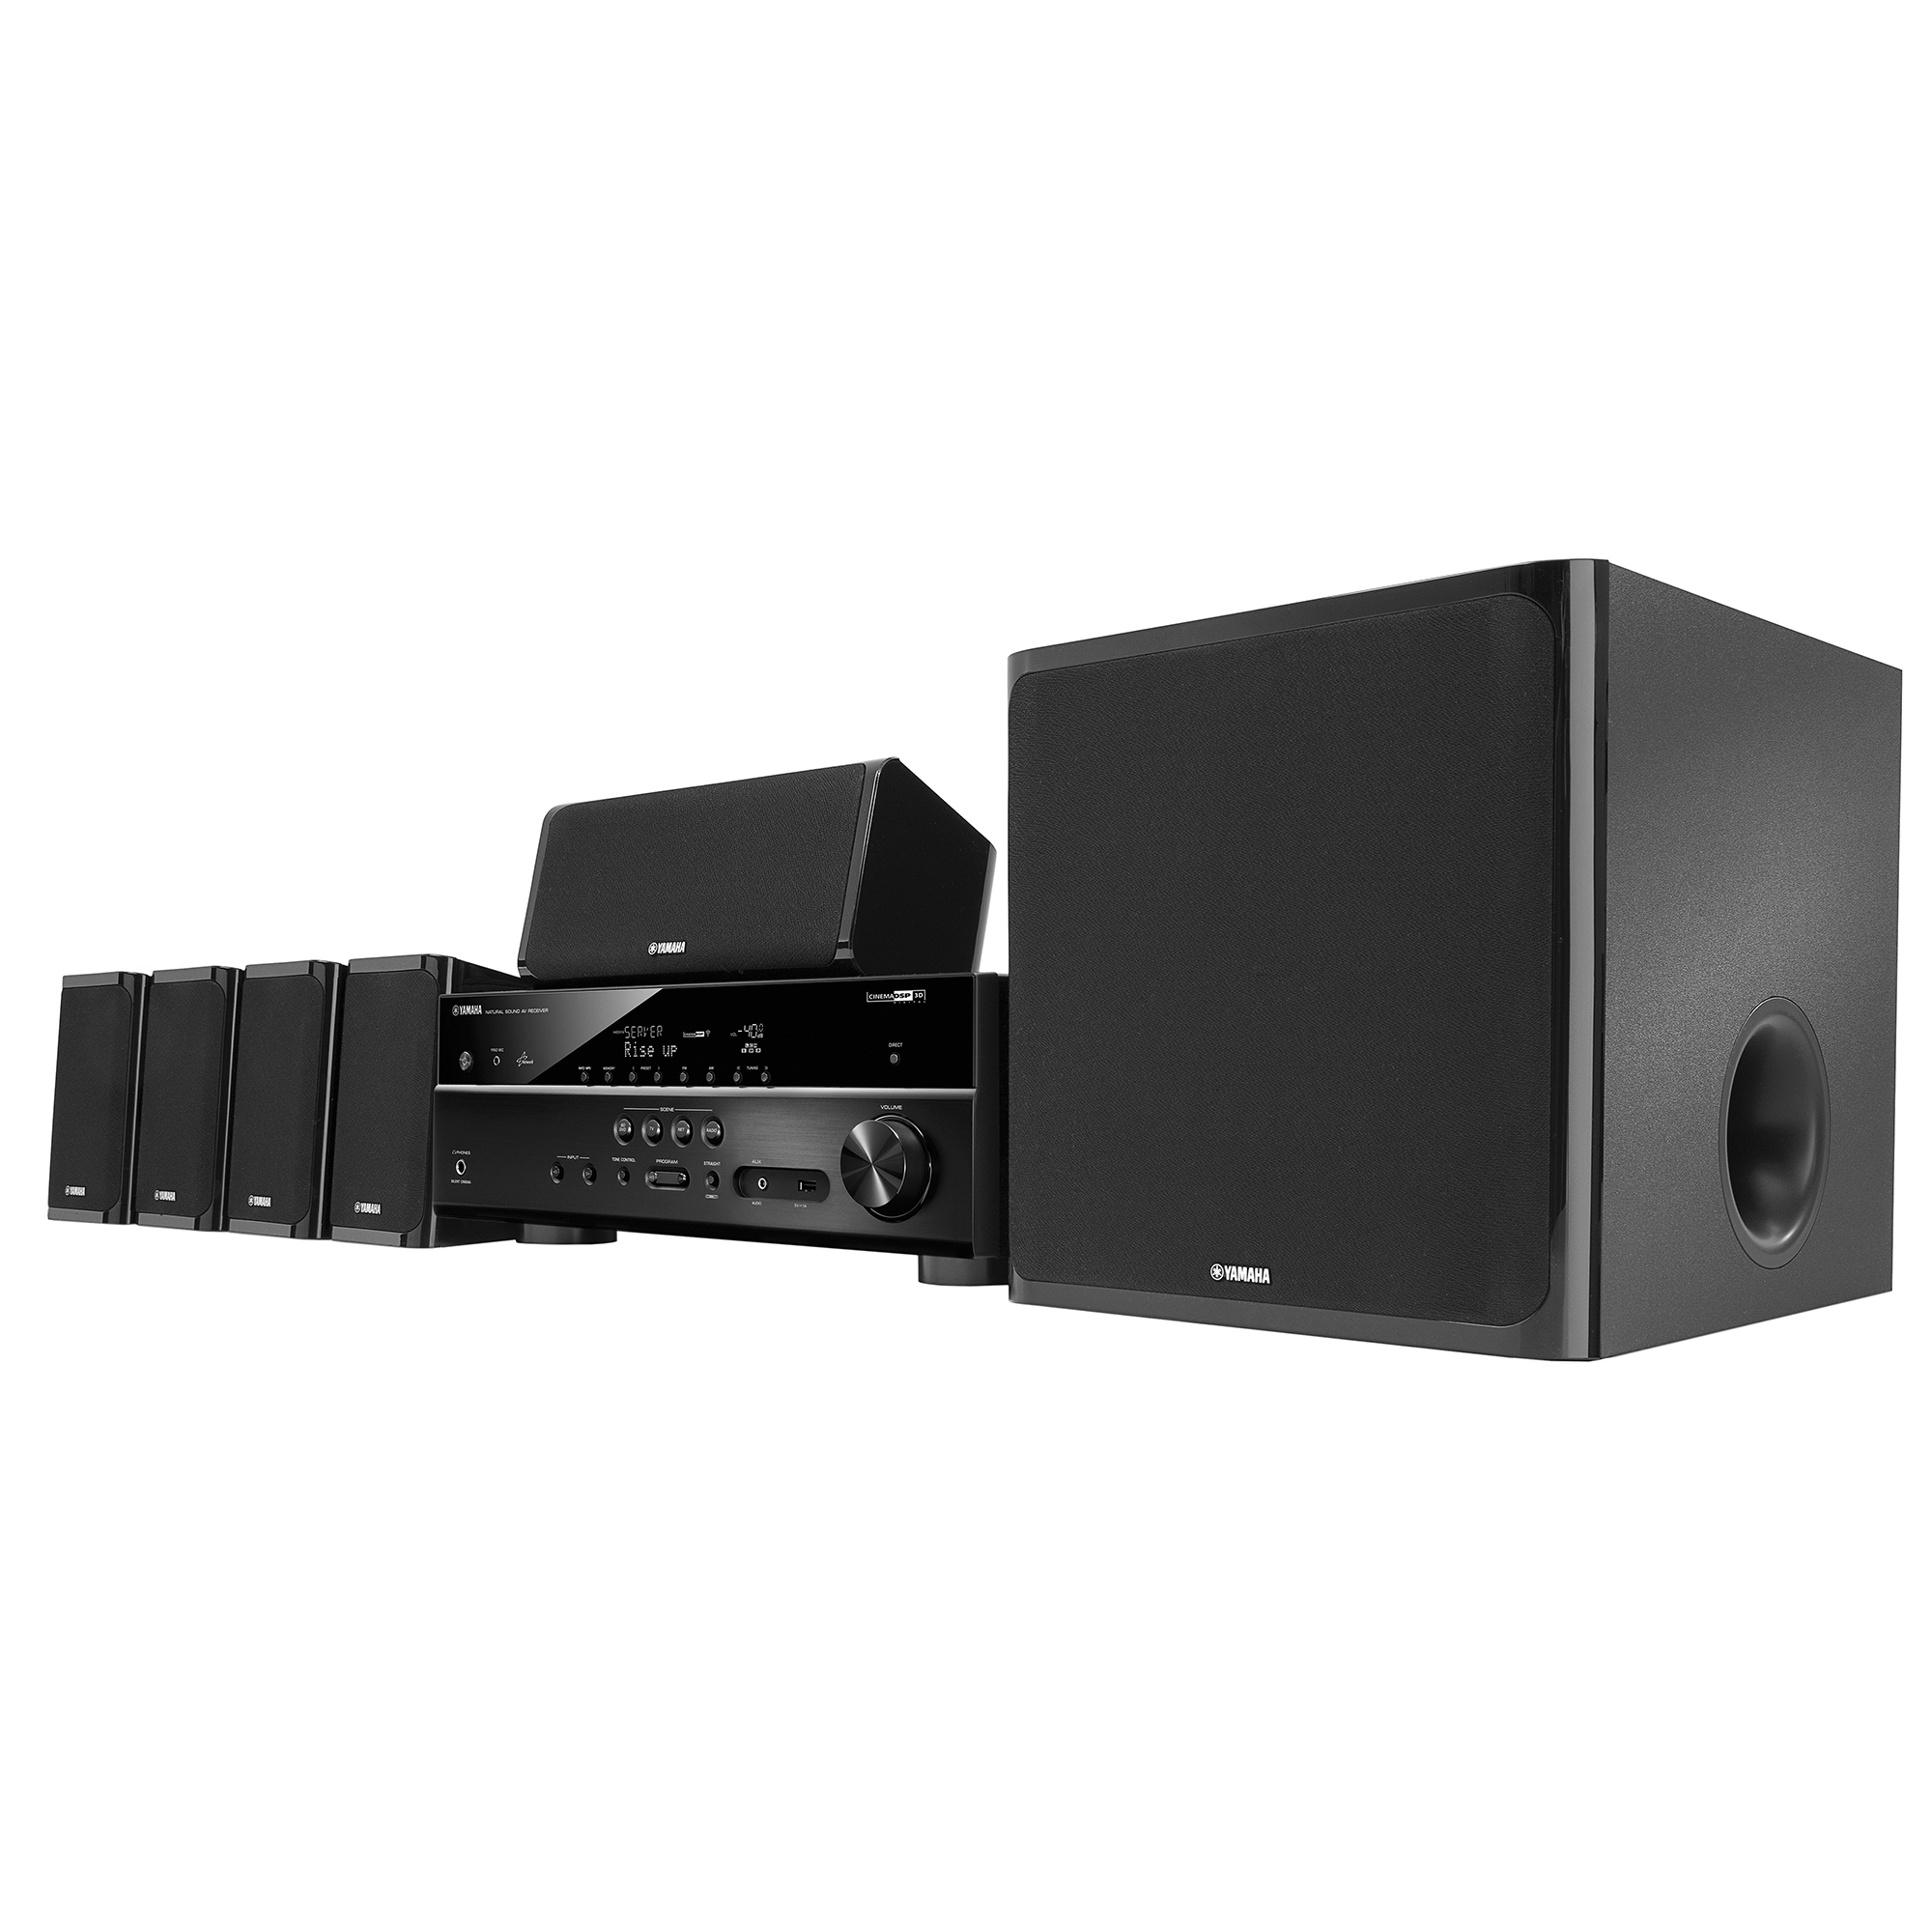 Yamaha YHT-5920UBL 5.1 Home Theater System